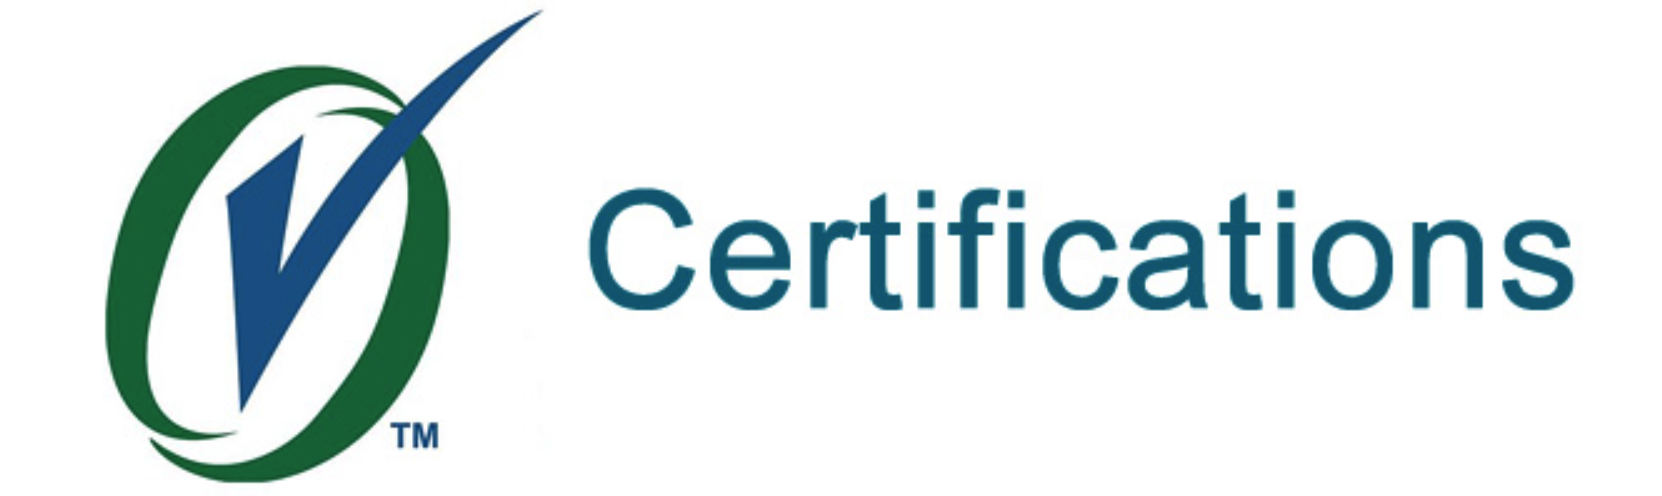 Certifications The Open Group